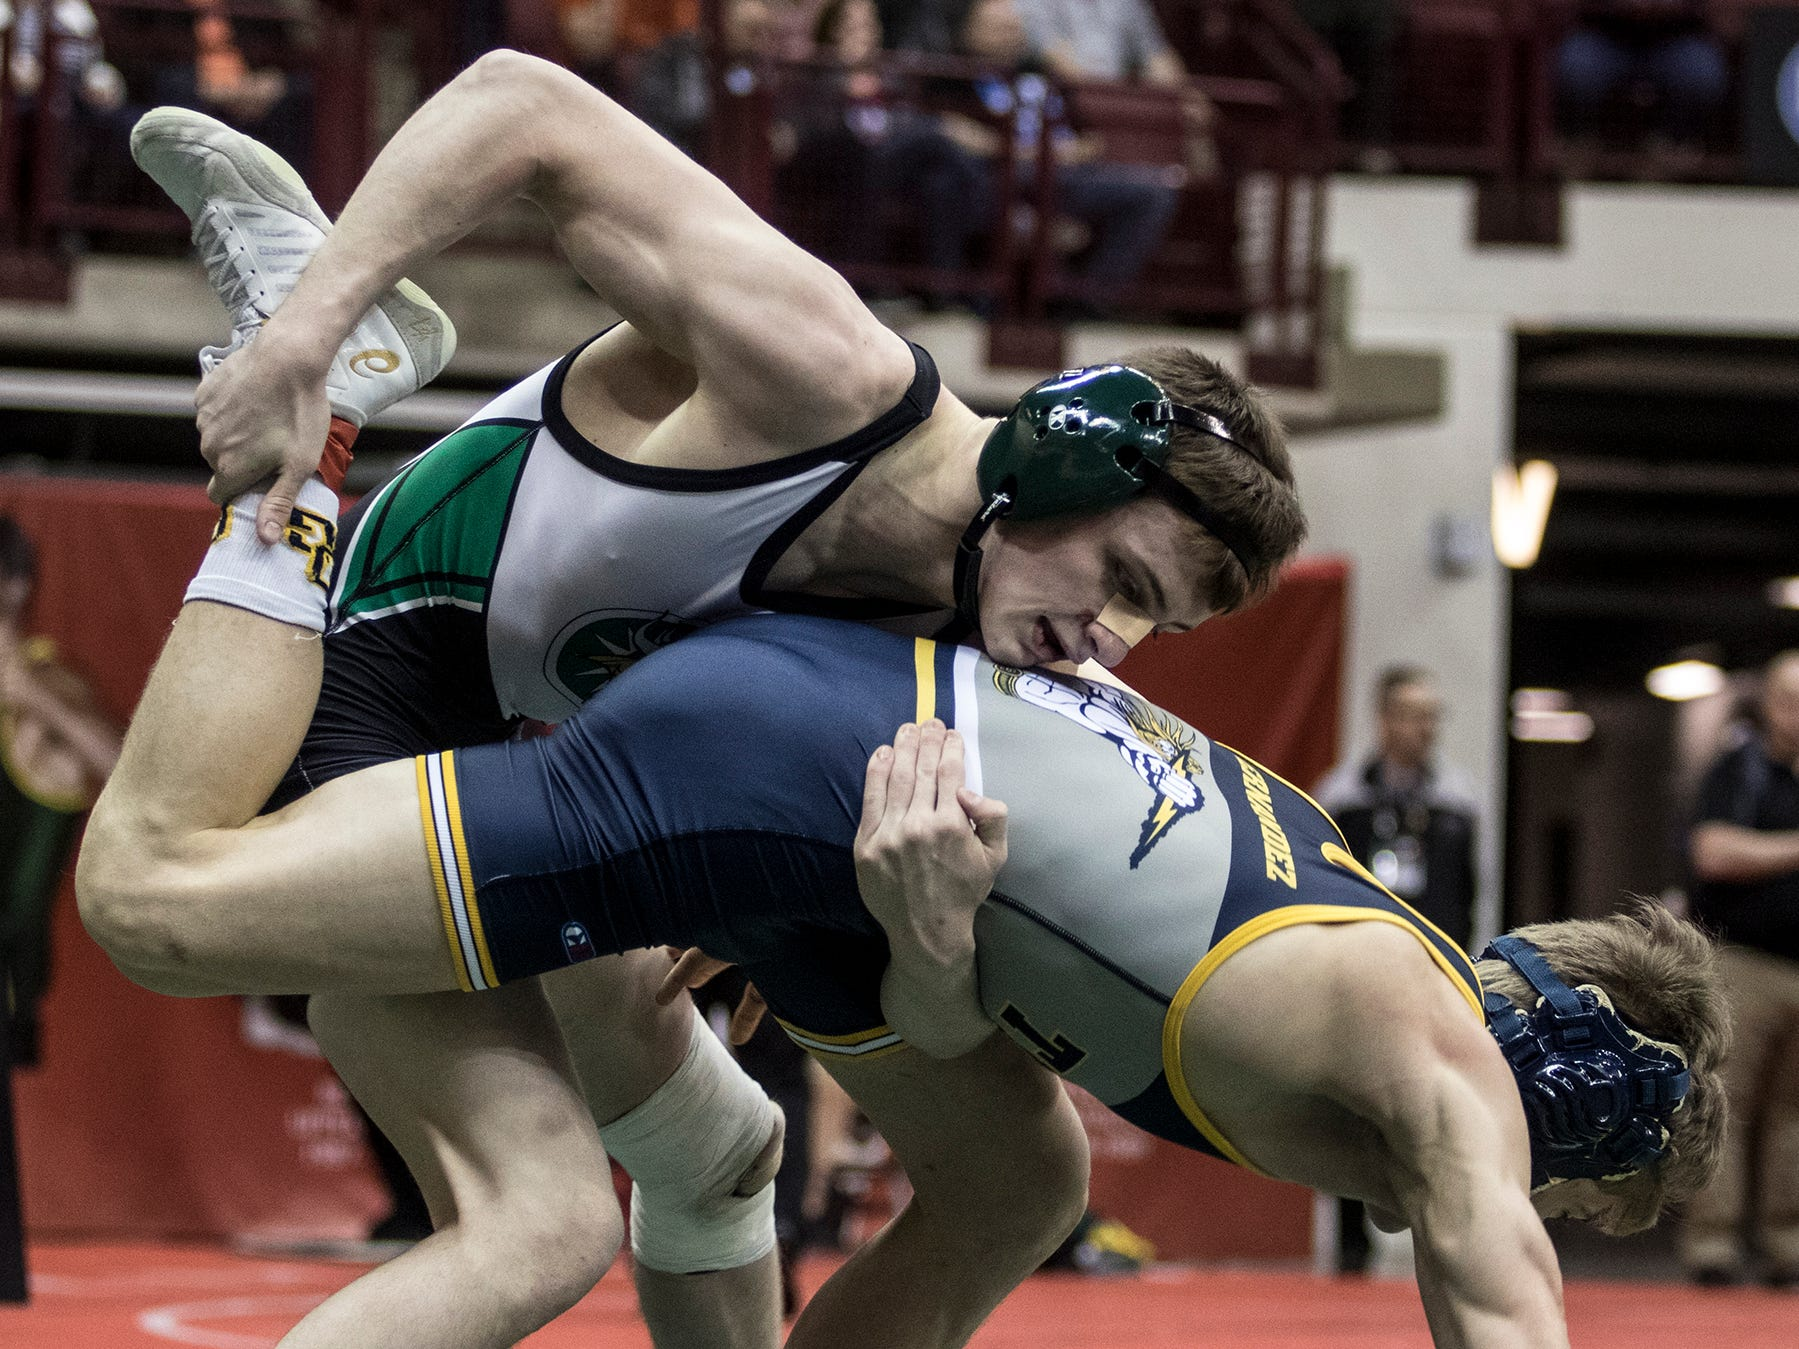 Northridge's Klay Reeves wrestles in the Division III 132 weight class at the state wrestling tournament Saturday.